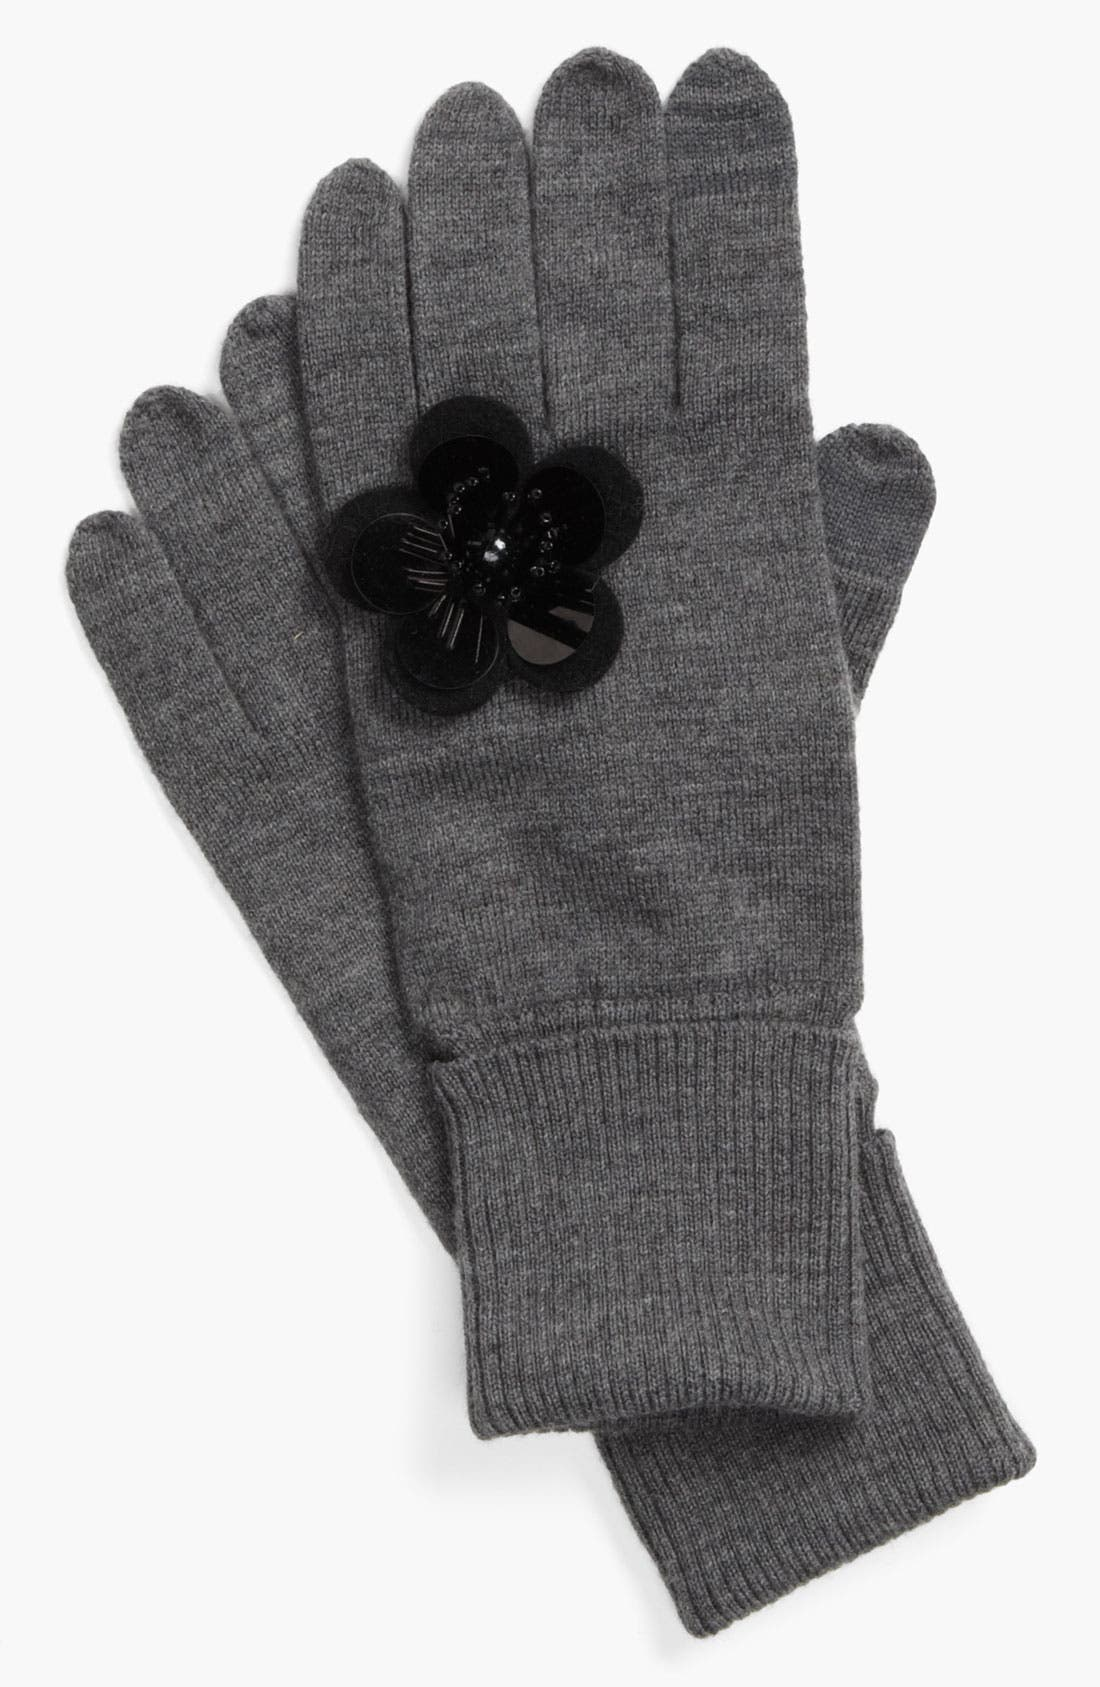 Alternate Image 1 Selected - kate spade new york 'magnolia' knit tech glove